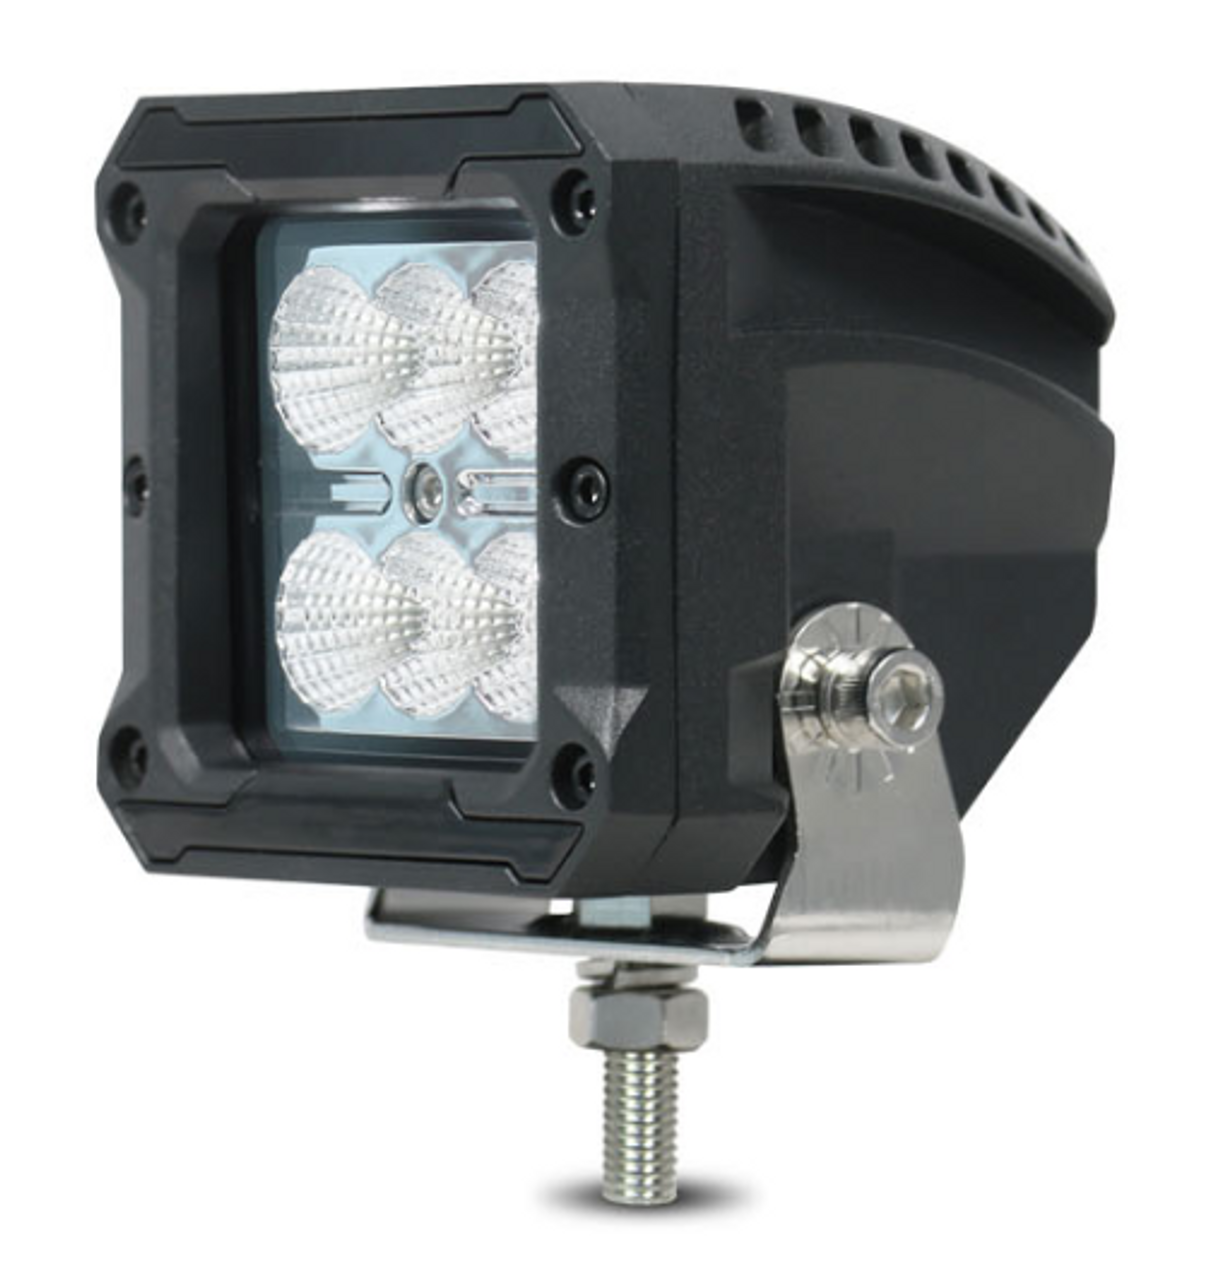 RWL3630F - 4 Inch Square LED Flood Beam Work Light. 30 Watt. Multi-Volt 10 to 30 Volt DC. 5 Year Warranty. Flood Beam 30 watts. Roadvision. Ultimate LED.